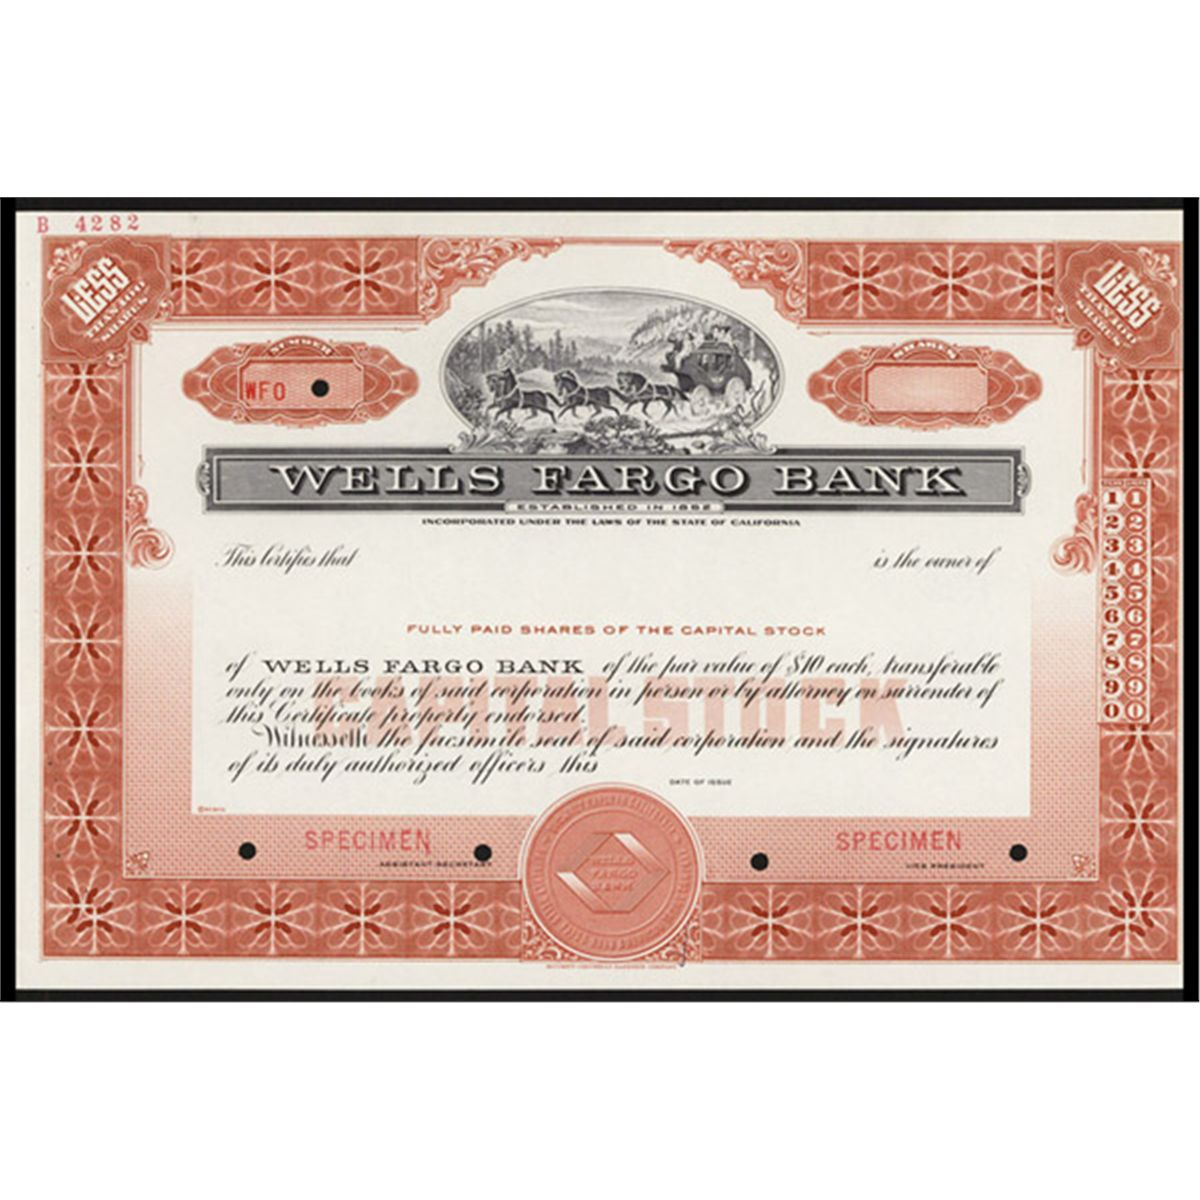 Wells Fargo Bank Specimen Stock Certificate Wiring Money To Account